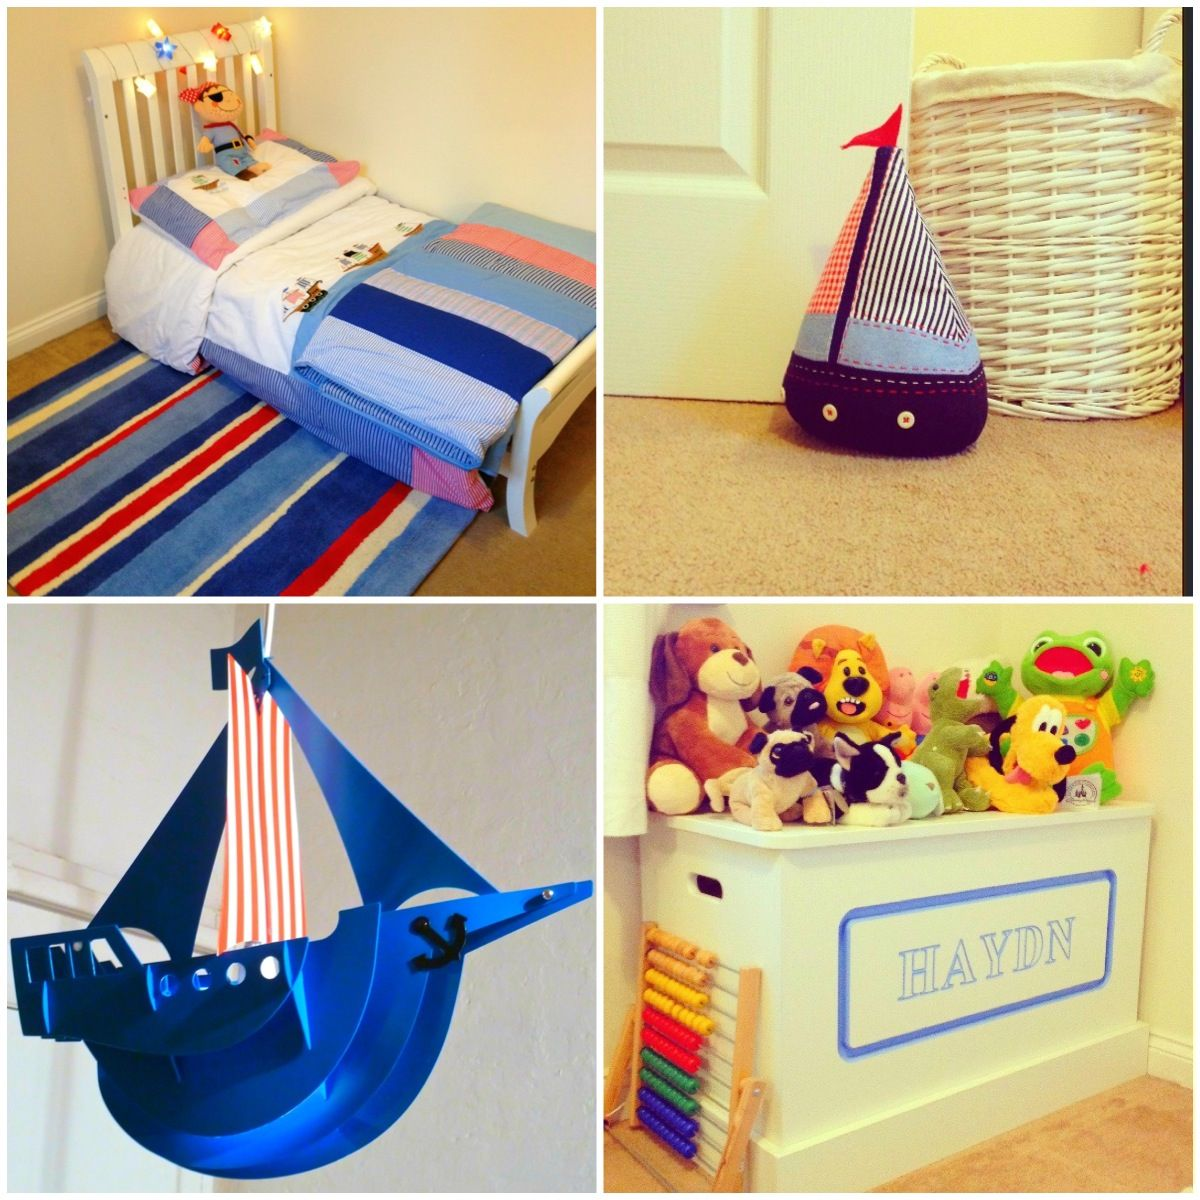 Pirate Bedroom Haydns New Bedroom Laura Ashley Pirate Bedroom Range With